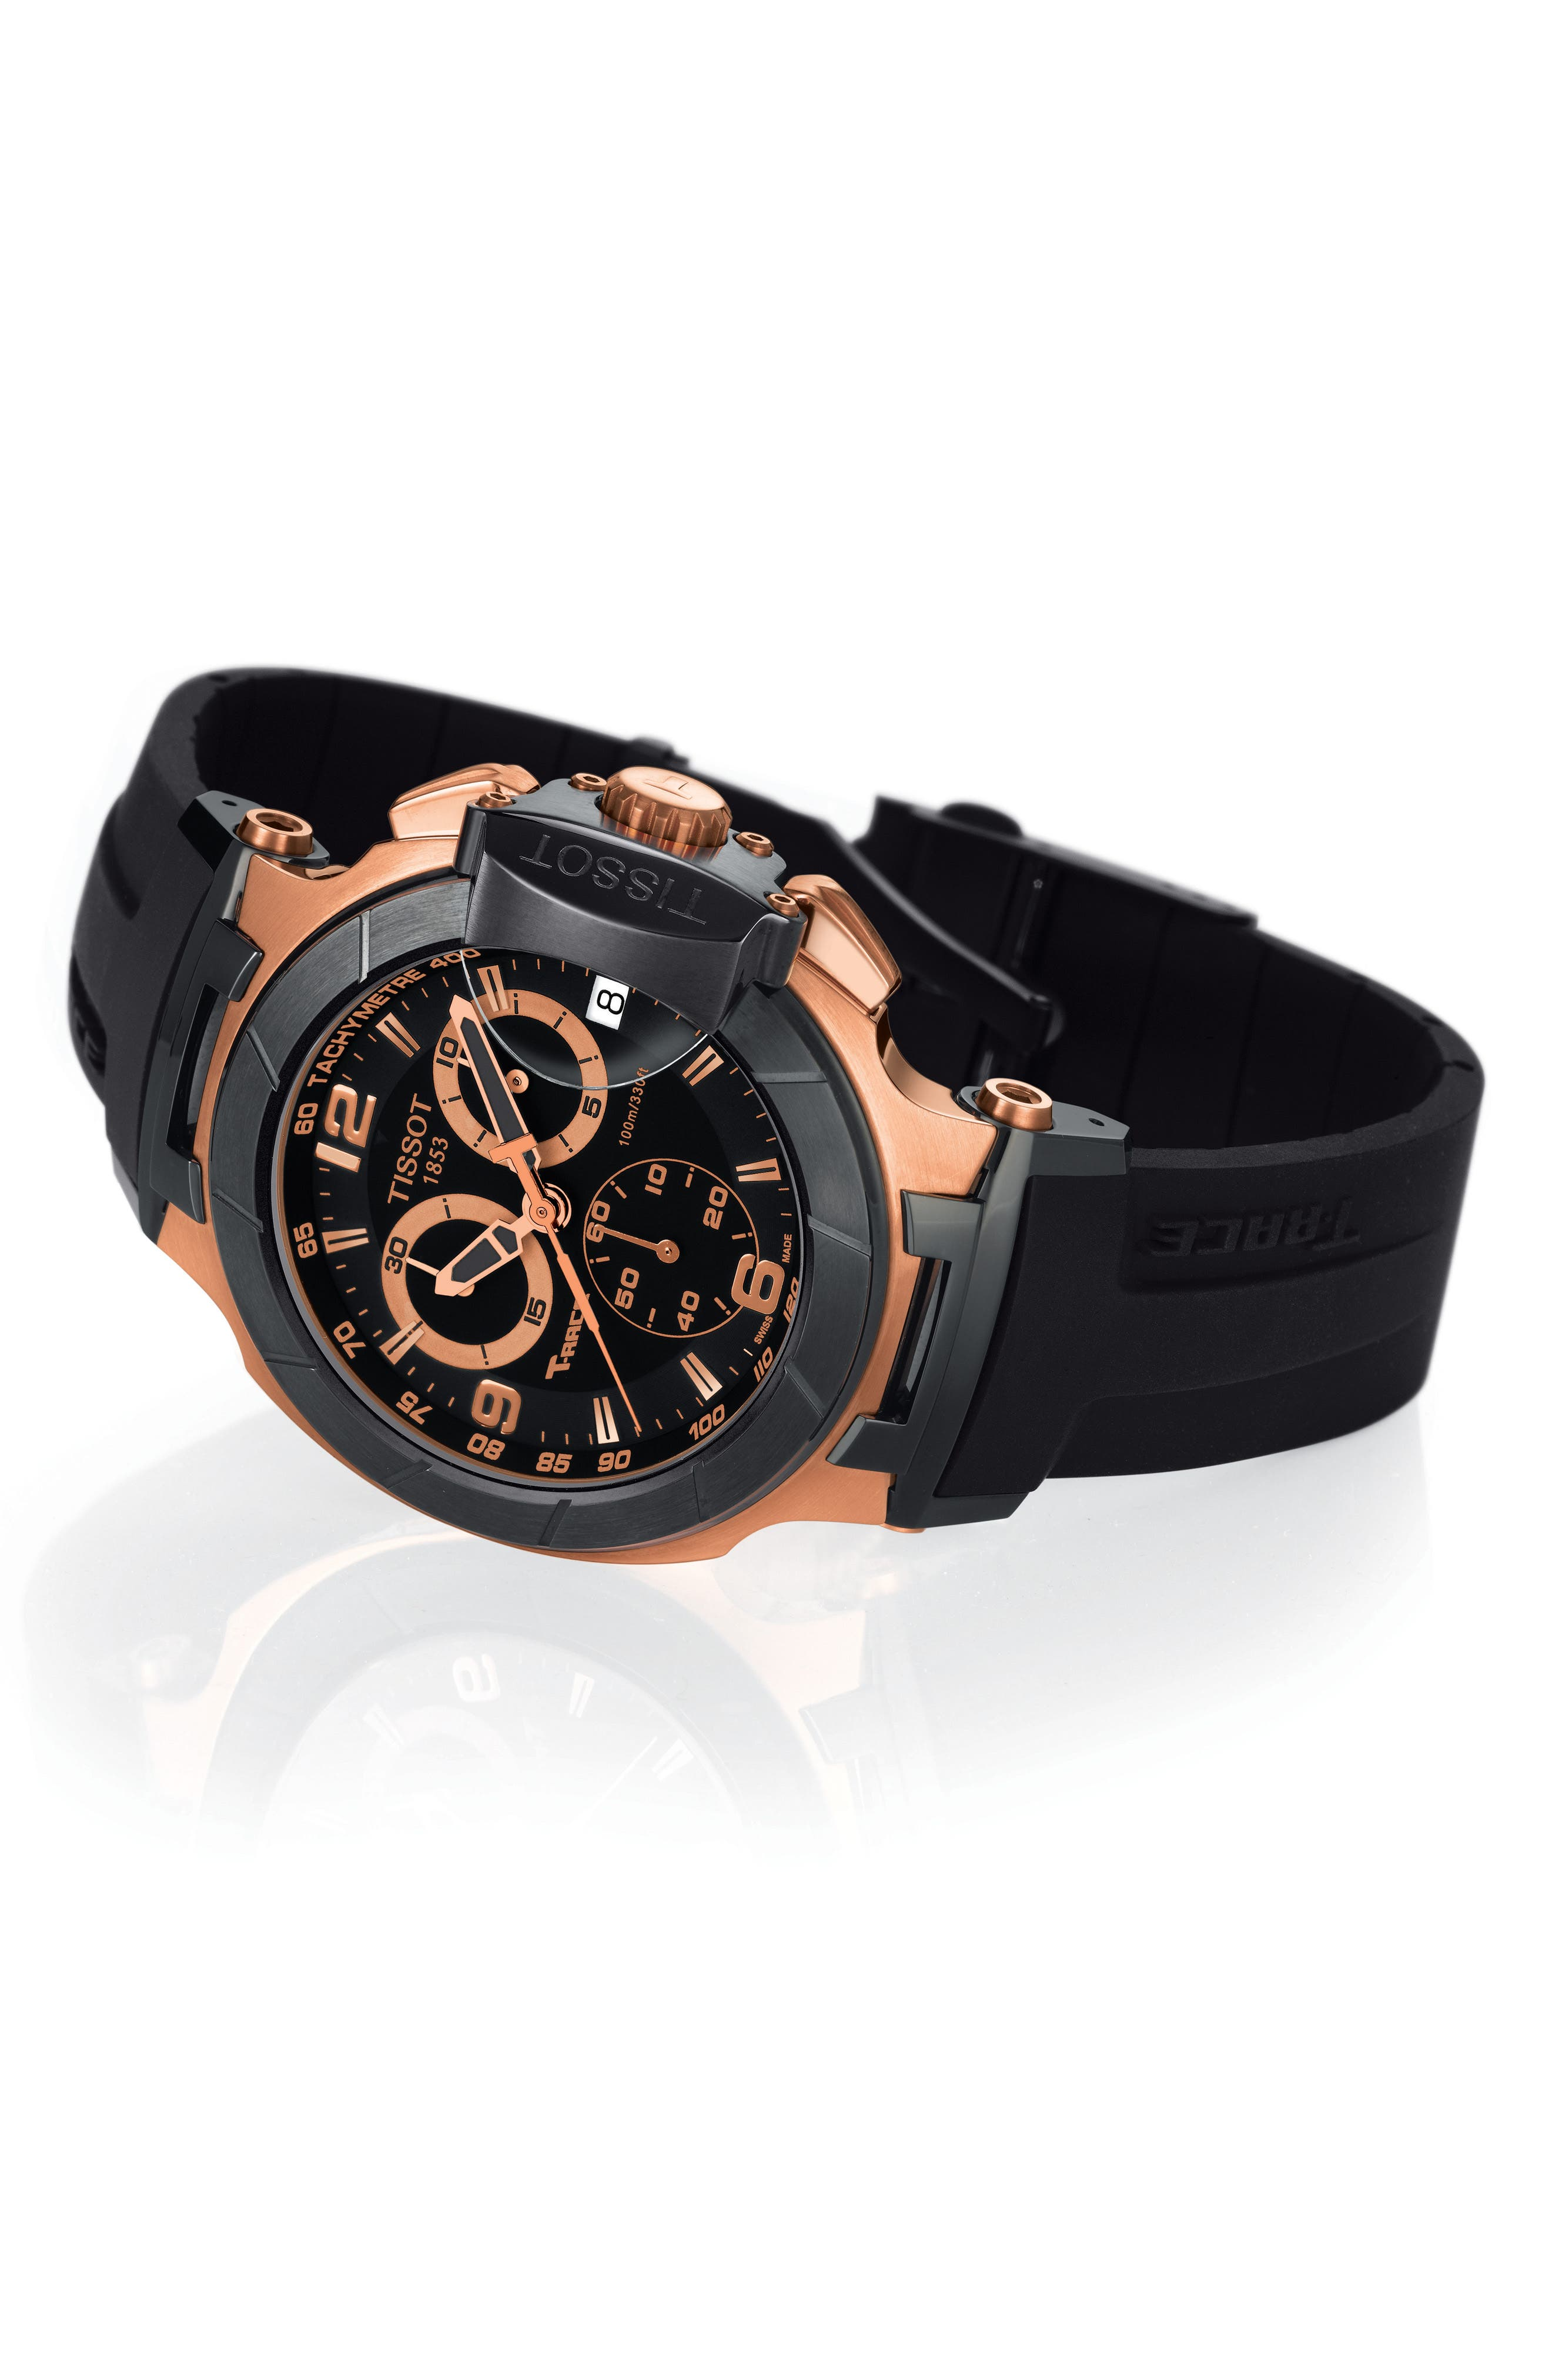 TISSOT, T-Race Chronograph Silicone Strap Watch, 50mm, Alternate thumbnail 5, color, BLACK/ ROSE GOLD